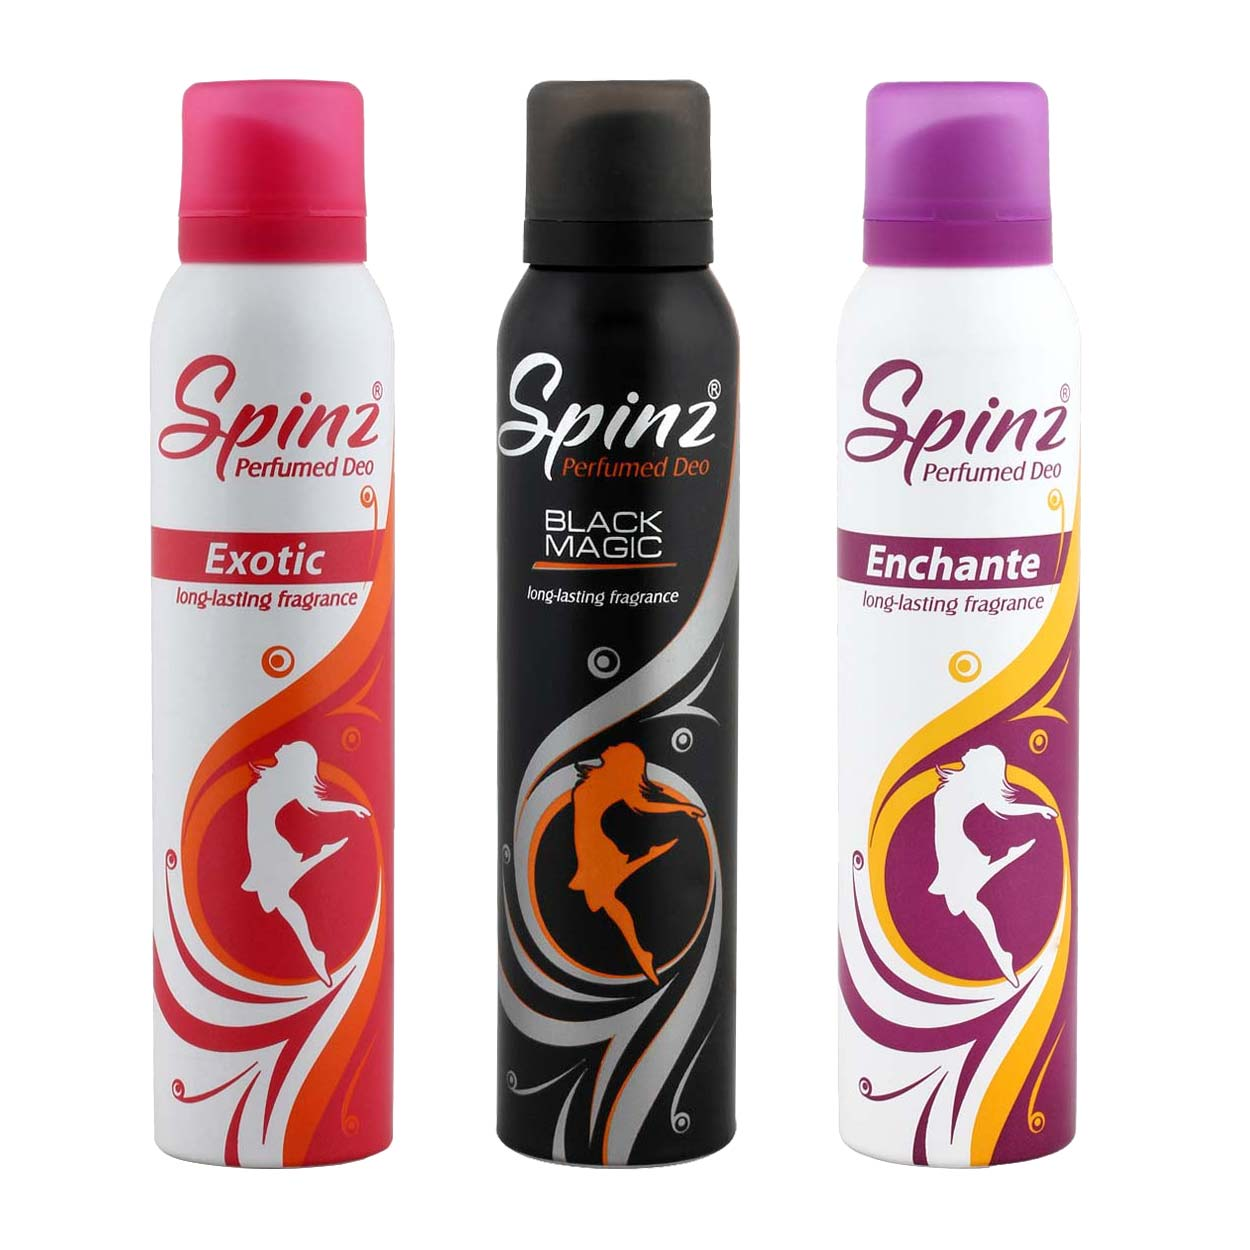 Spinz Enchante, Exotic And Black Magic Pack Of 3 Deodorants